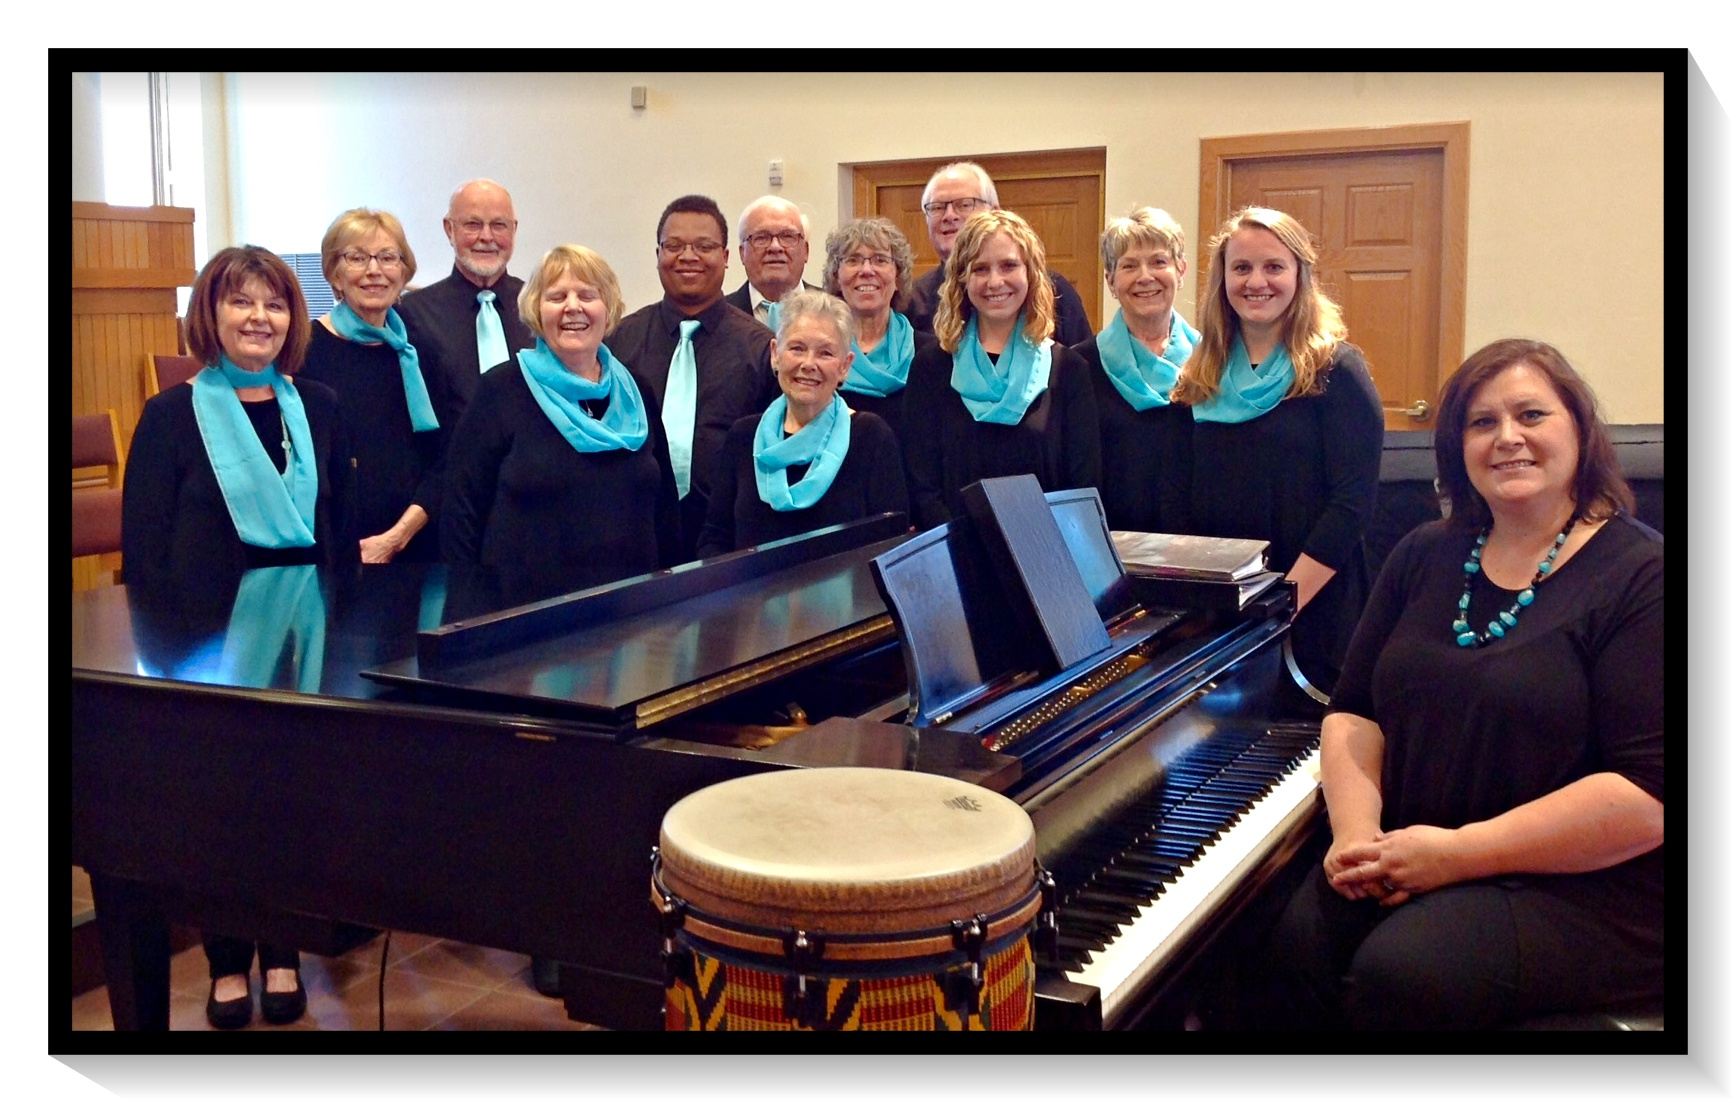 New Day Singers | The Peninsula Singers